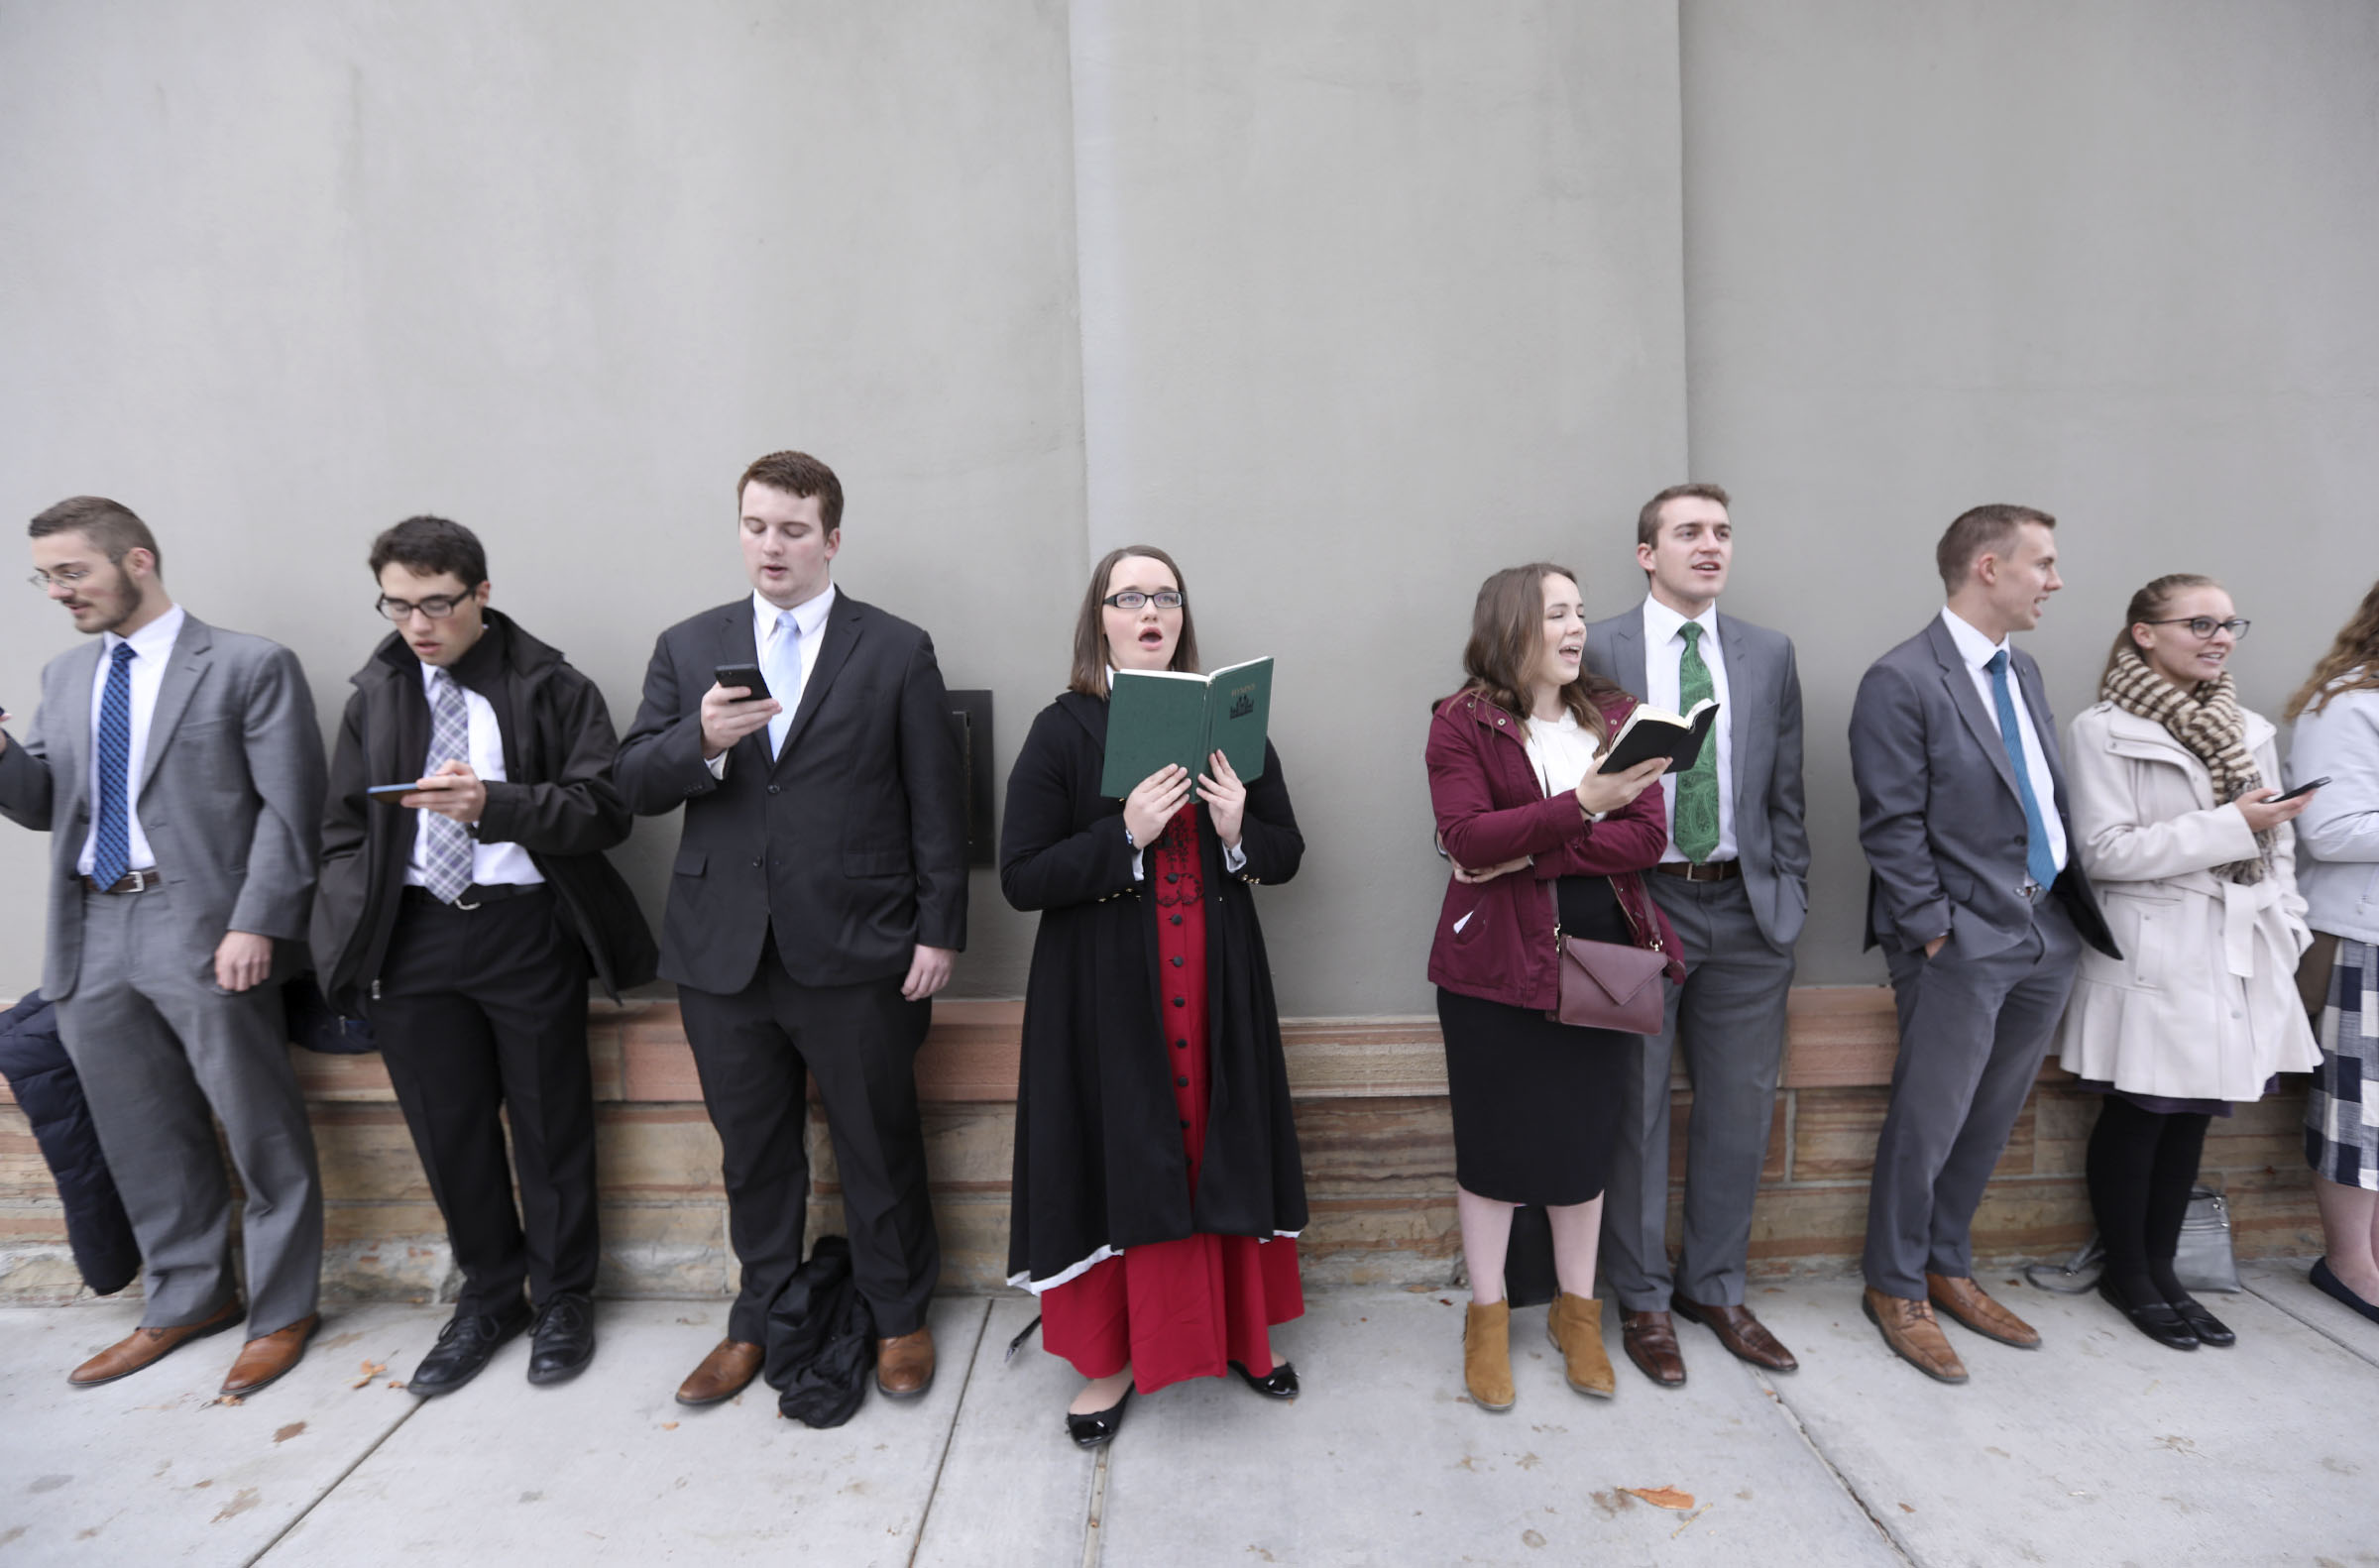 Members of the Logan Young Single Adults First Stake sing hymns between sessions of the 188th Semiannual General Conference of The Church of Jesus Christ of Latter-day Saints outside of Temple Square in downtown Salt Lake City on Sunday, Oct. 7, 2018.